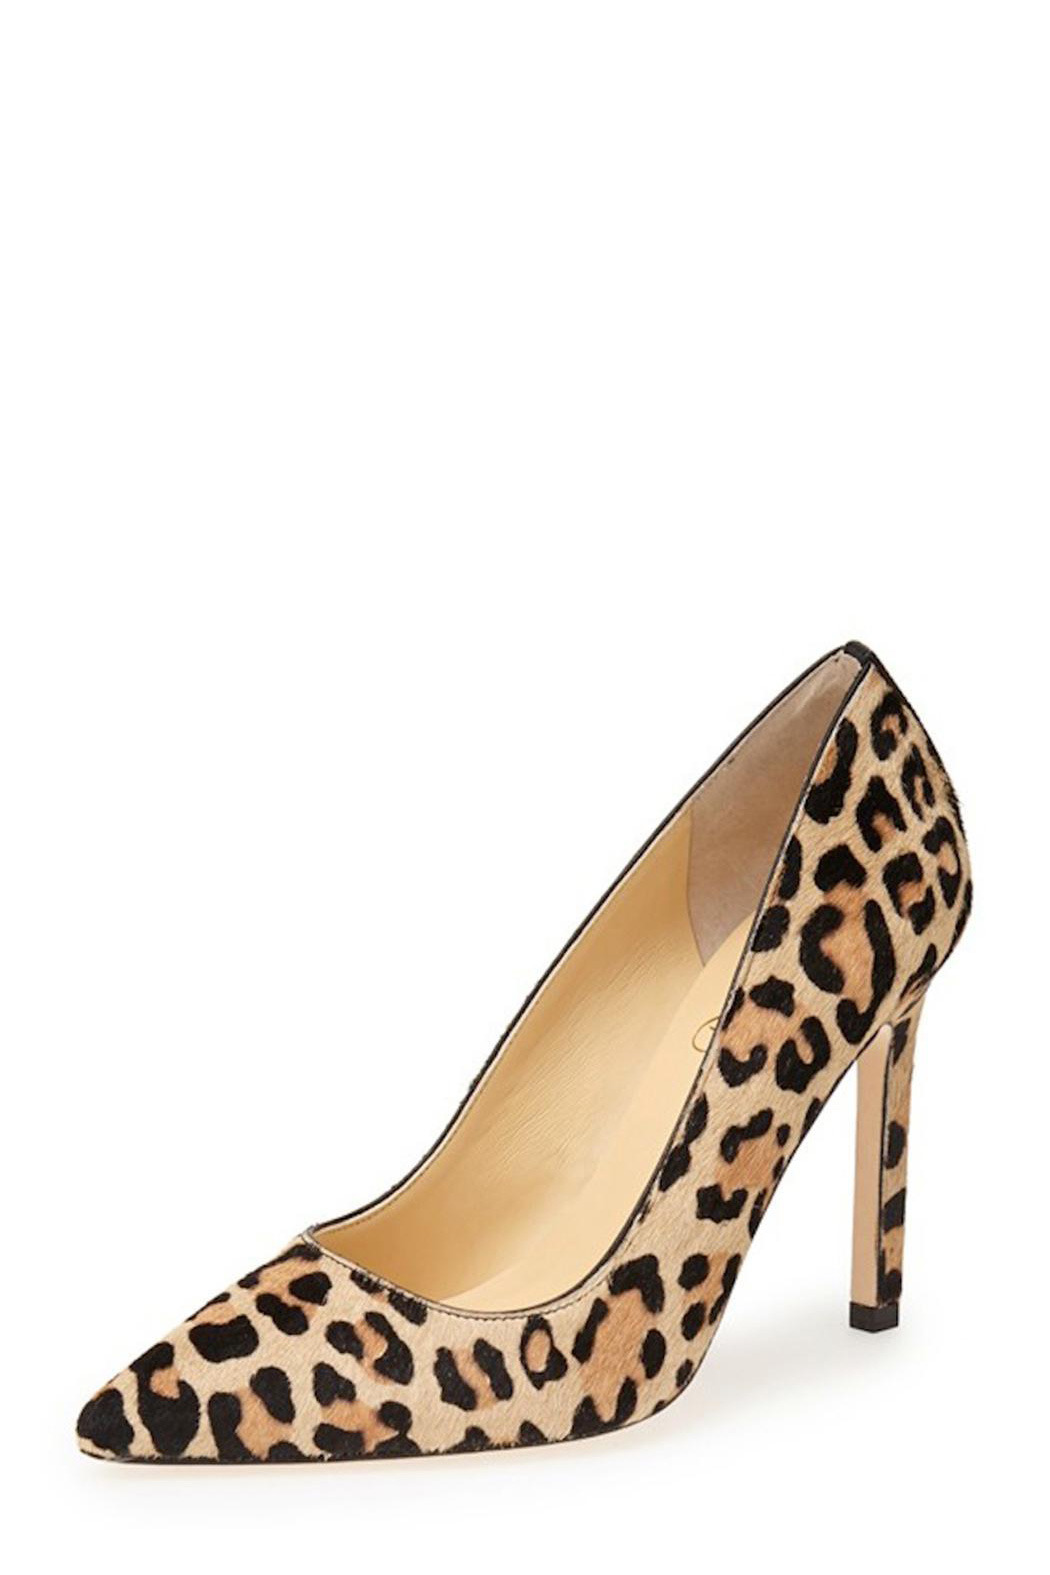 85db18f1f2fe IVANKA TRUMP Carraly In Leopard from Alexandria by Bishop Boutique ...